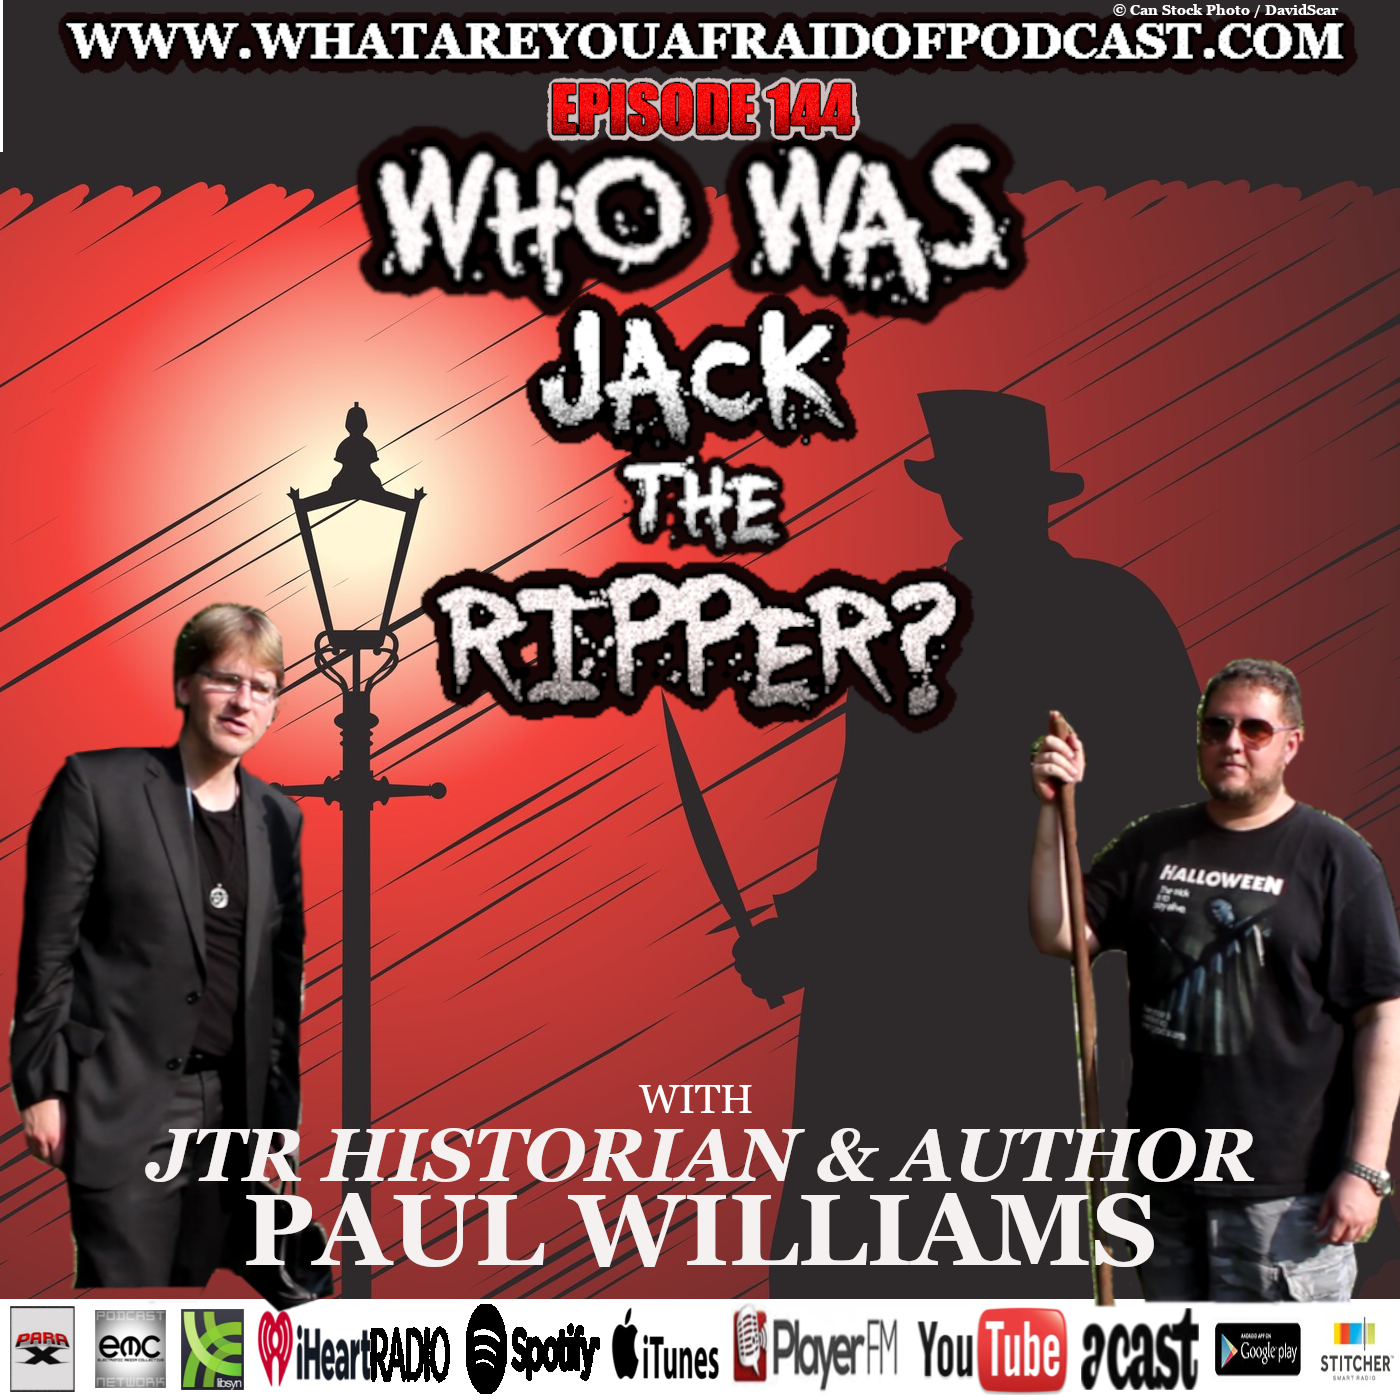 144 - WHO WAS JACK THE RIPPER?